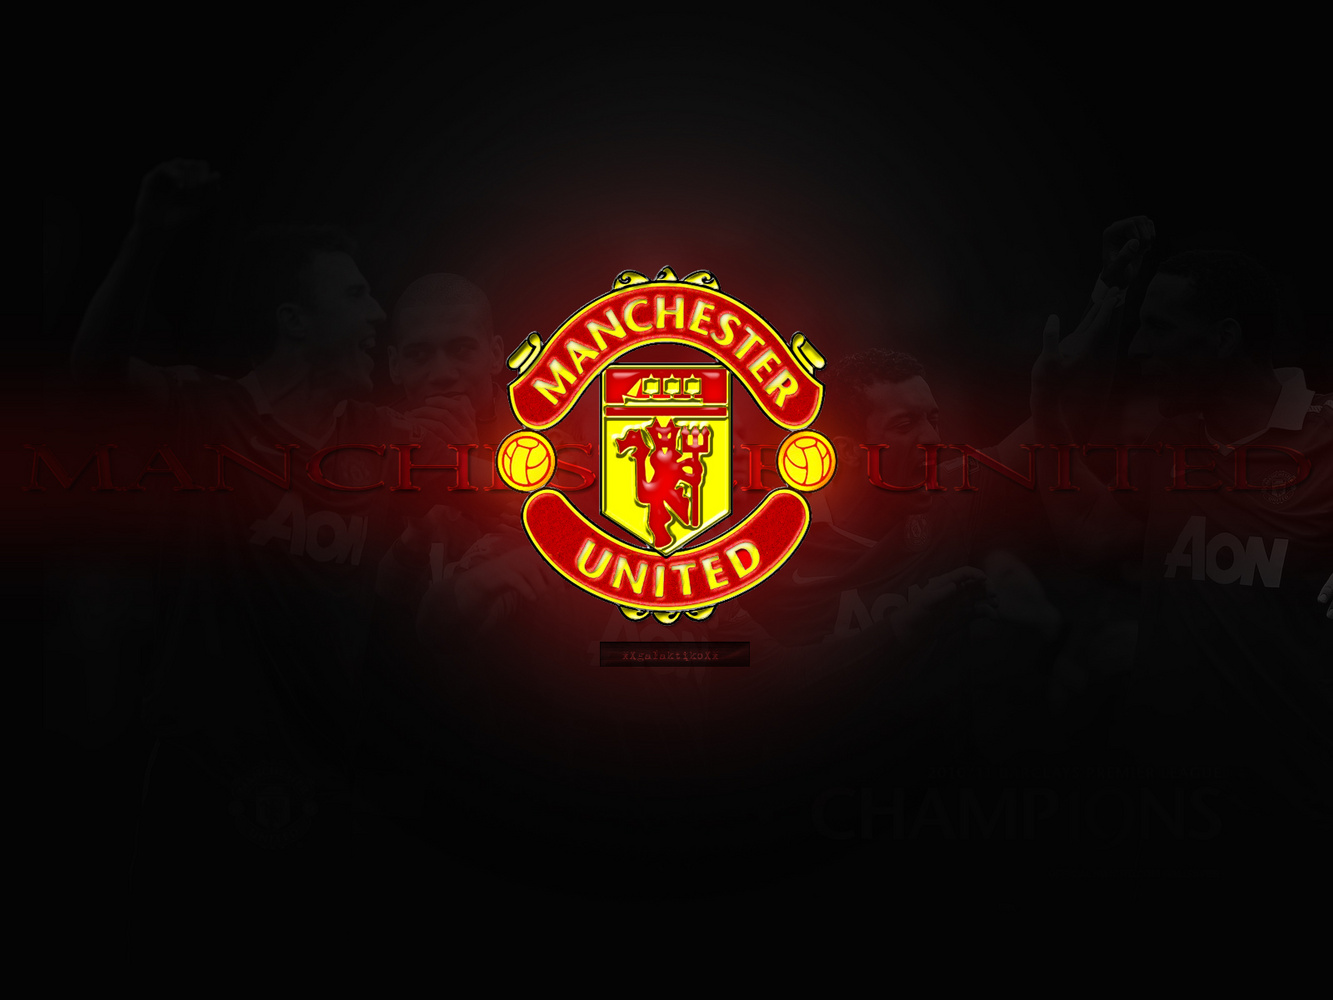 World Sports Hd Wallpapers Manchester United Hd 1333x1000